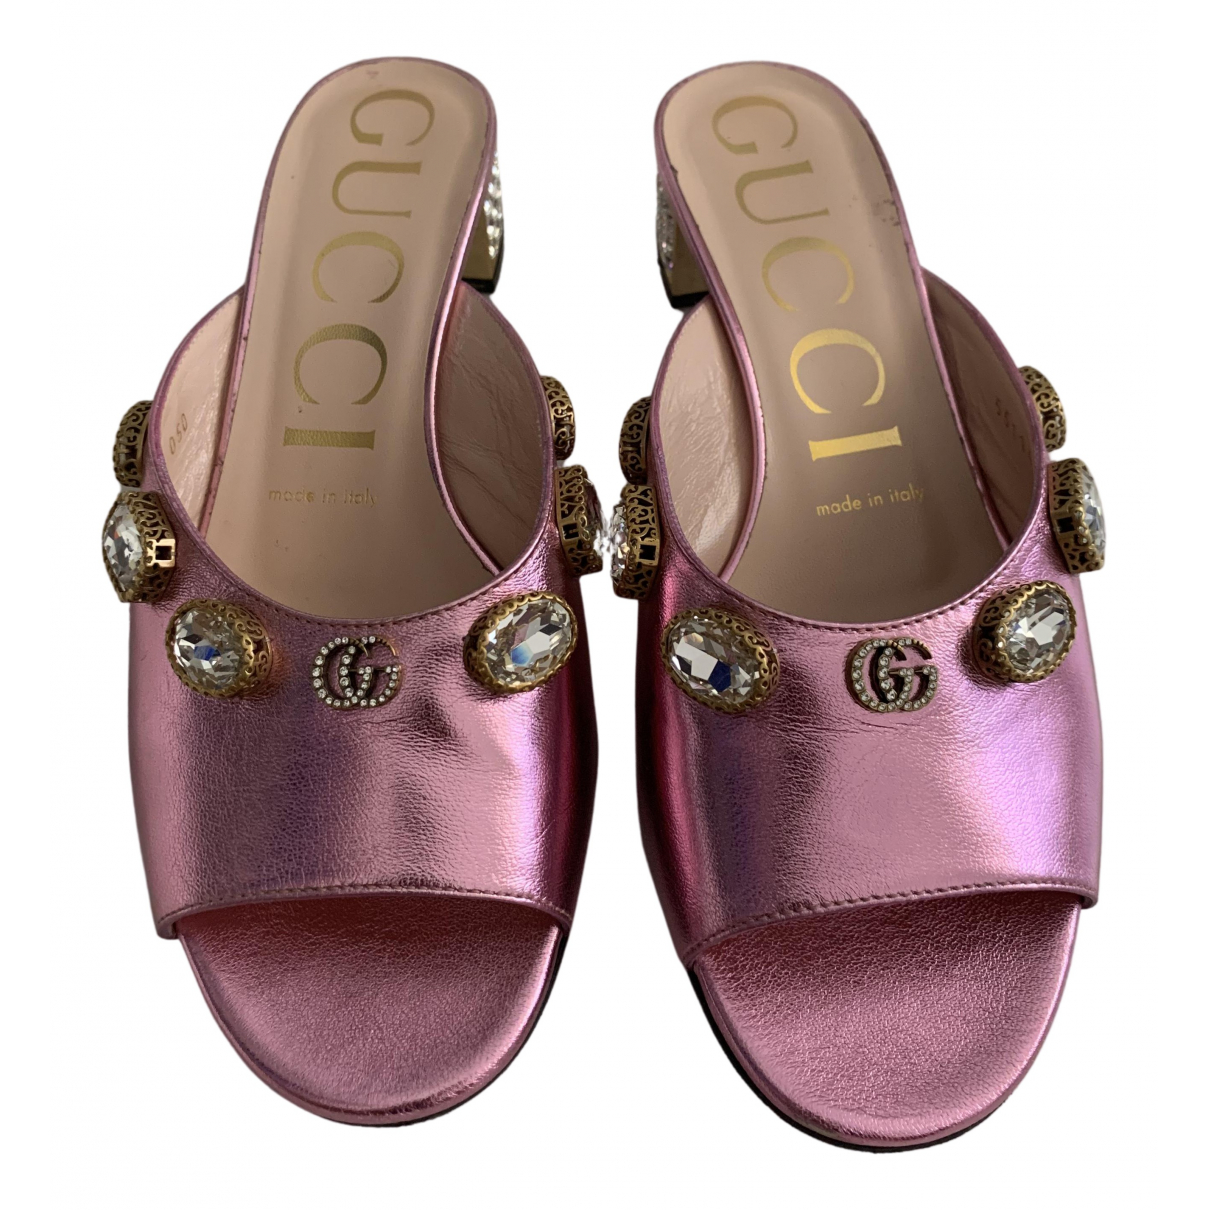 Gucci \N Pink Leather Sandals for Women 36.5 EU